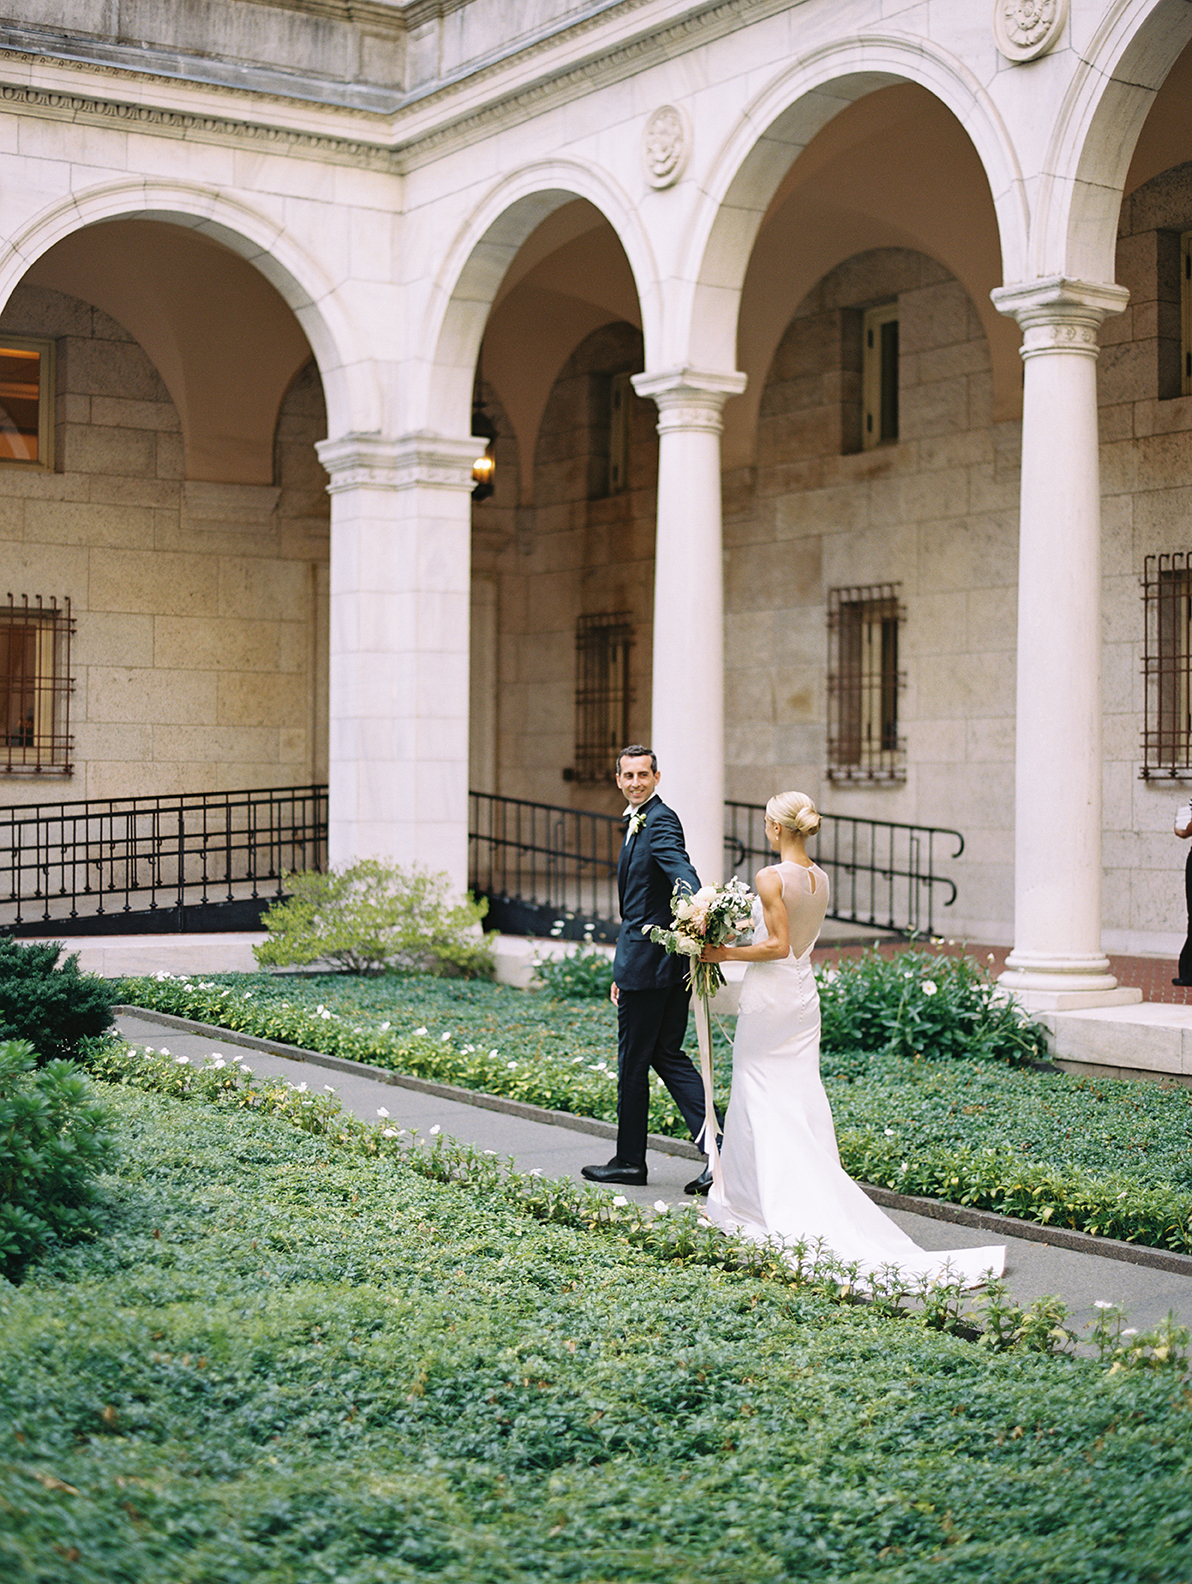 308_Kent+Katie_Fine_Art_Film_Photography_Boston_Public_Library_Wedding_Brumley & Wells.jpg